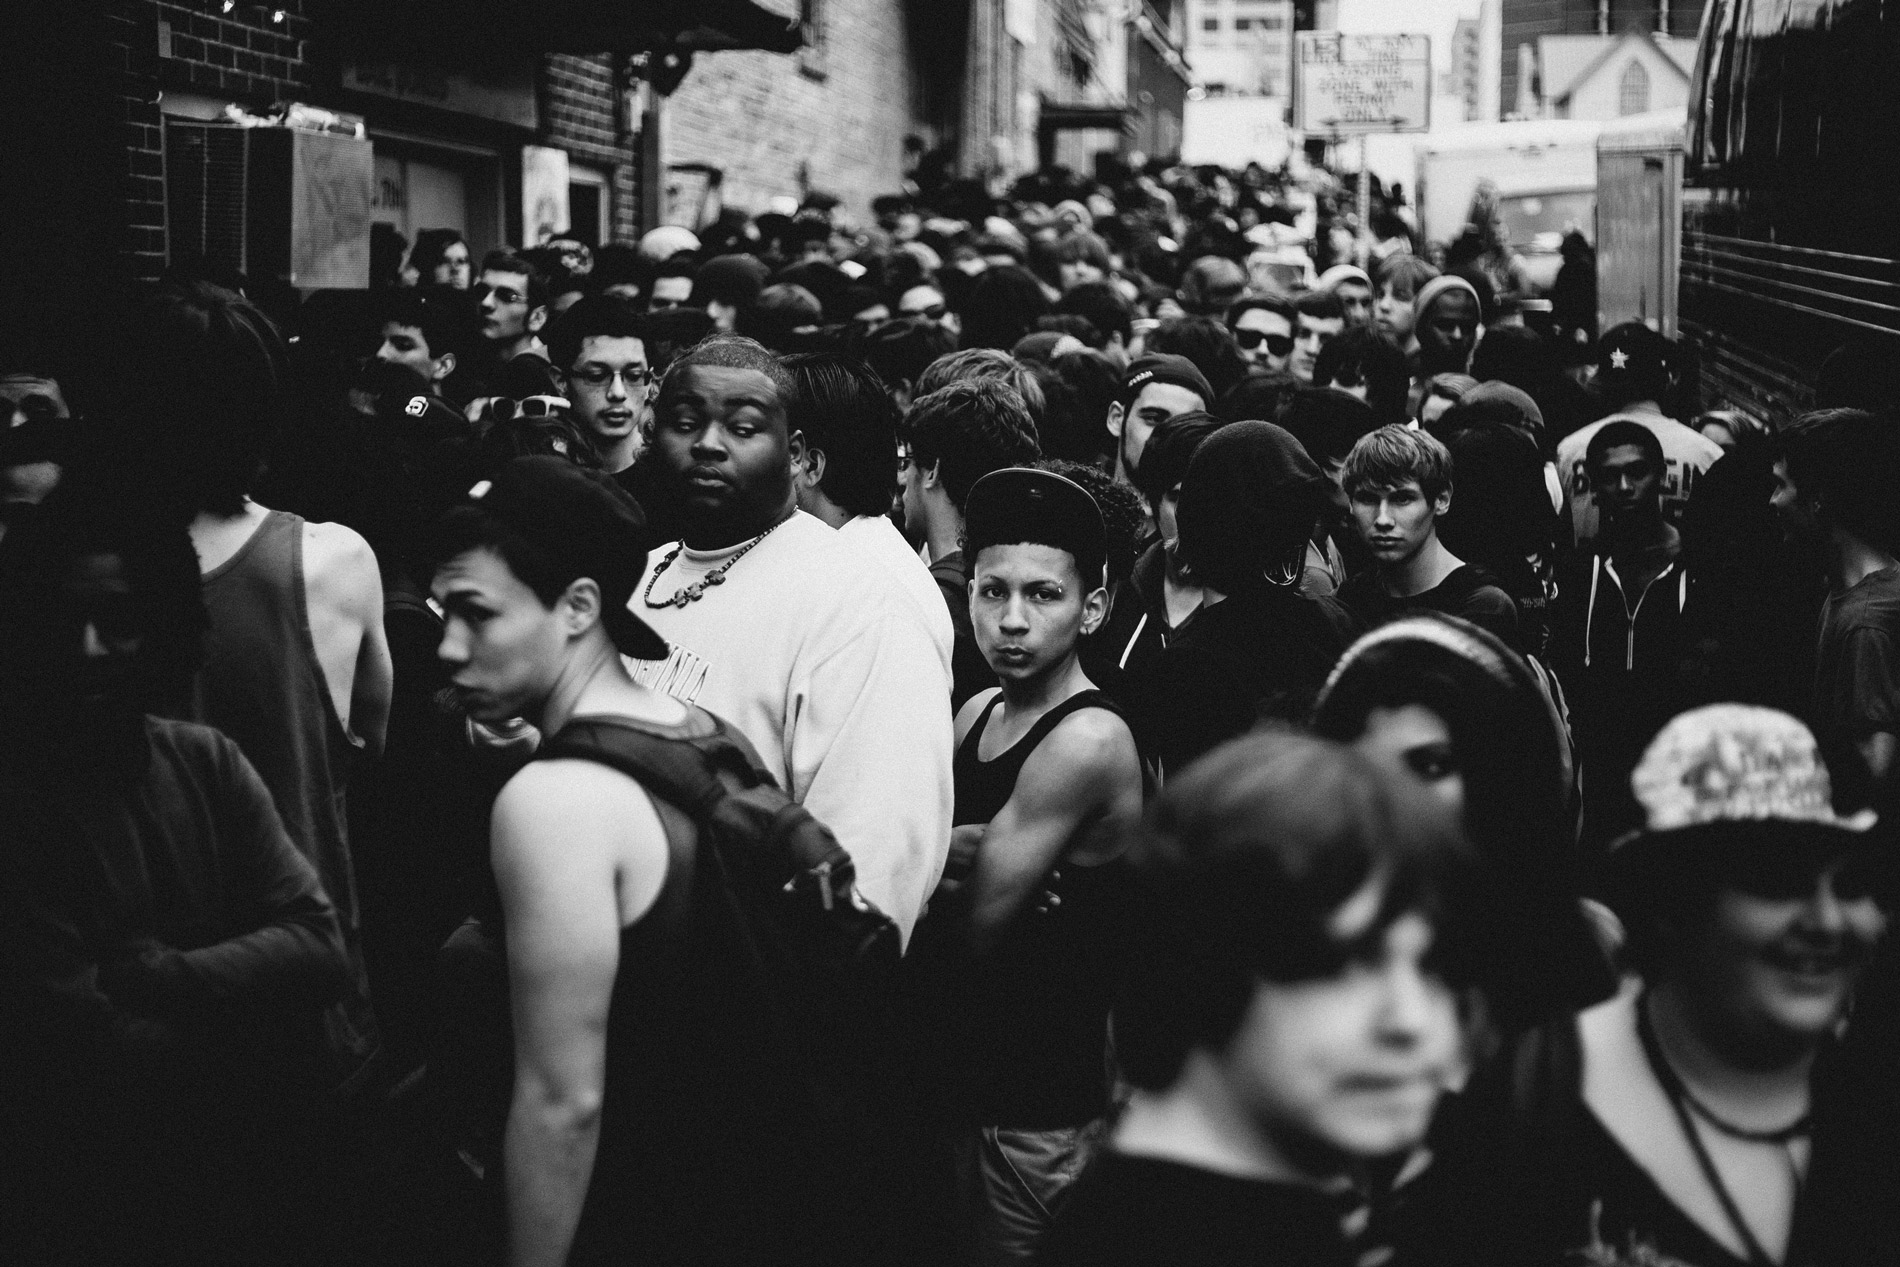 people of color in crowd